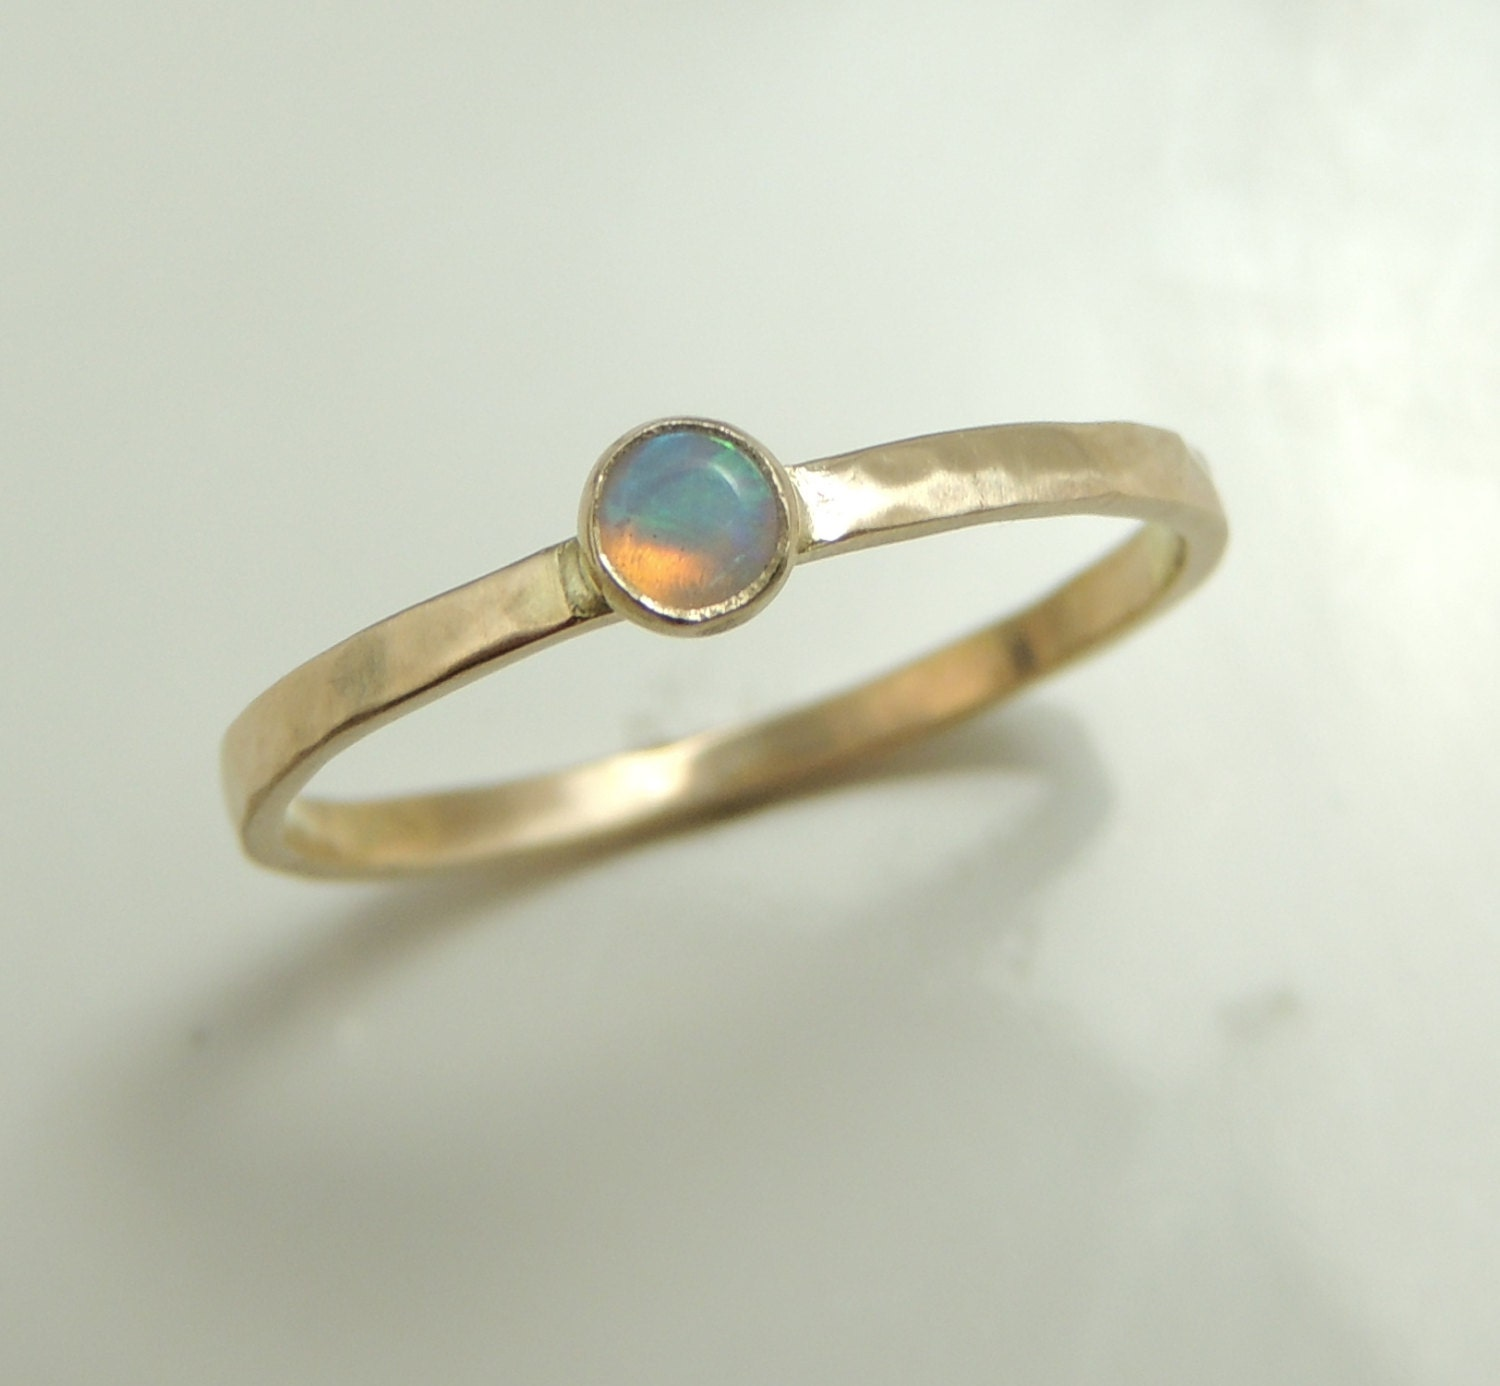 items similar to sale 14k gold opal ring on etsy